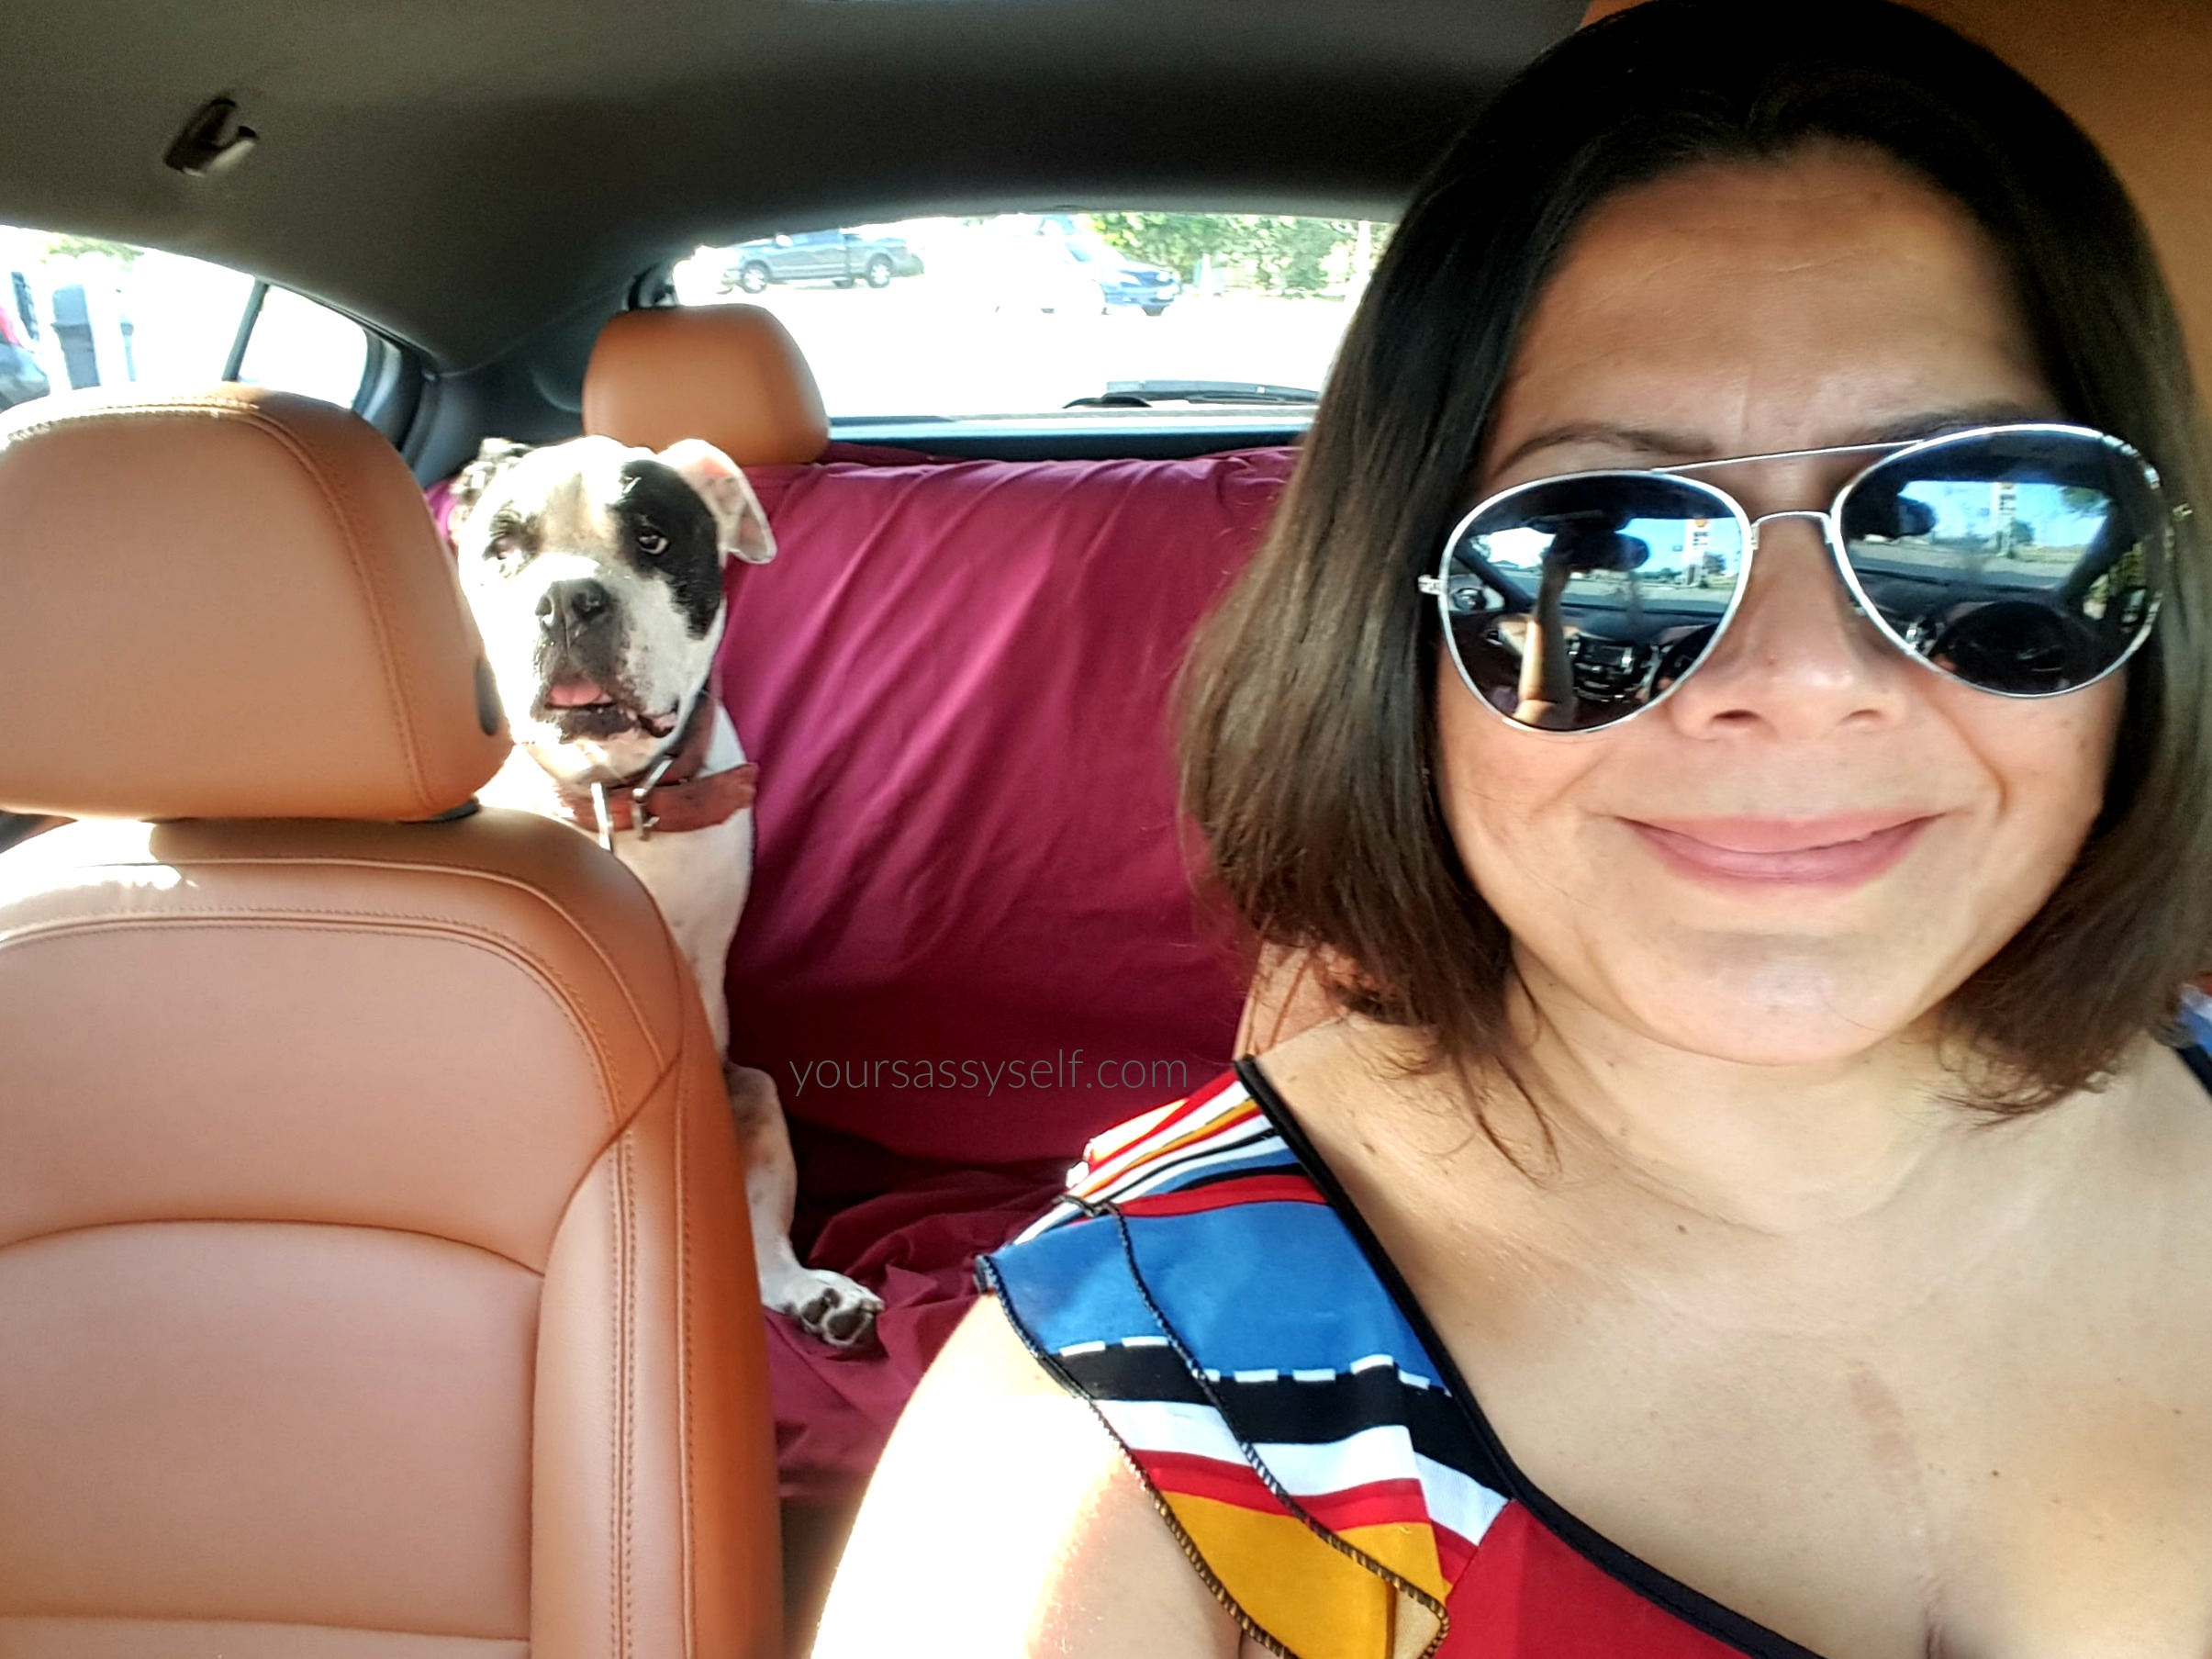 Me & My Baby in 2017 Chevy Cruze - yoursassyself.com